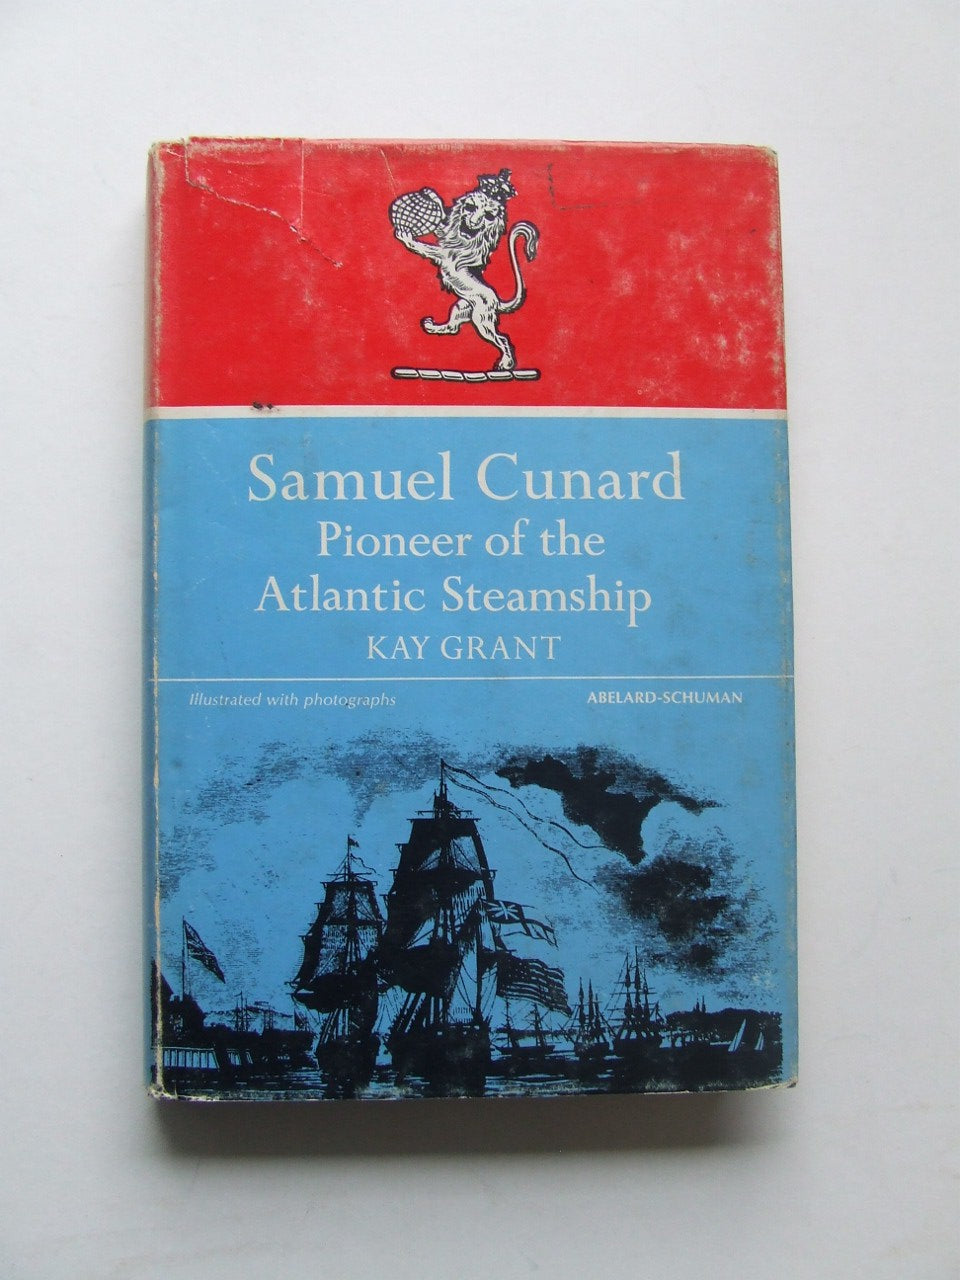 Samuel Cunard, pioneer of the Atlantic steamship